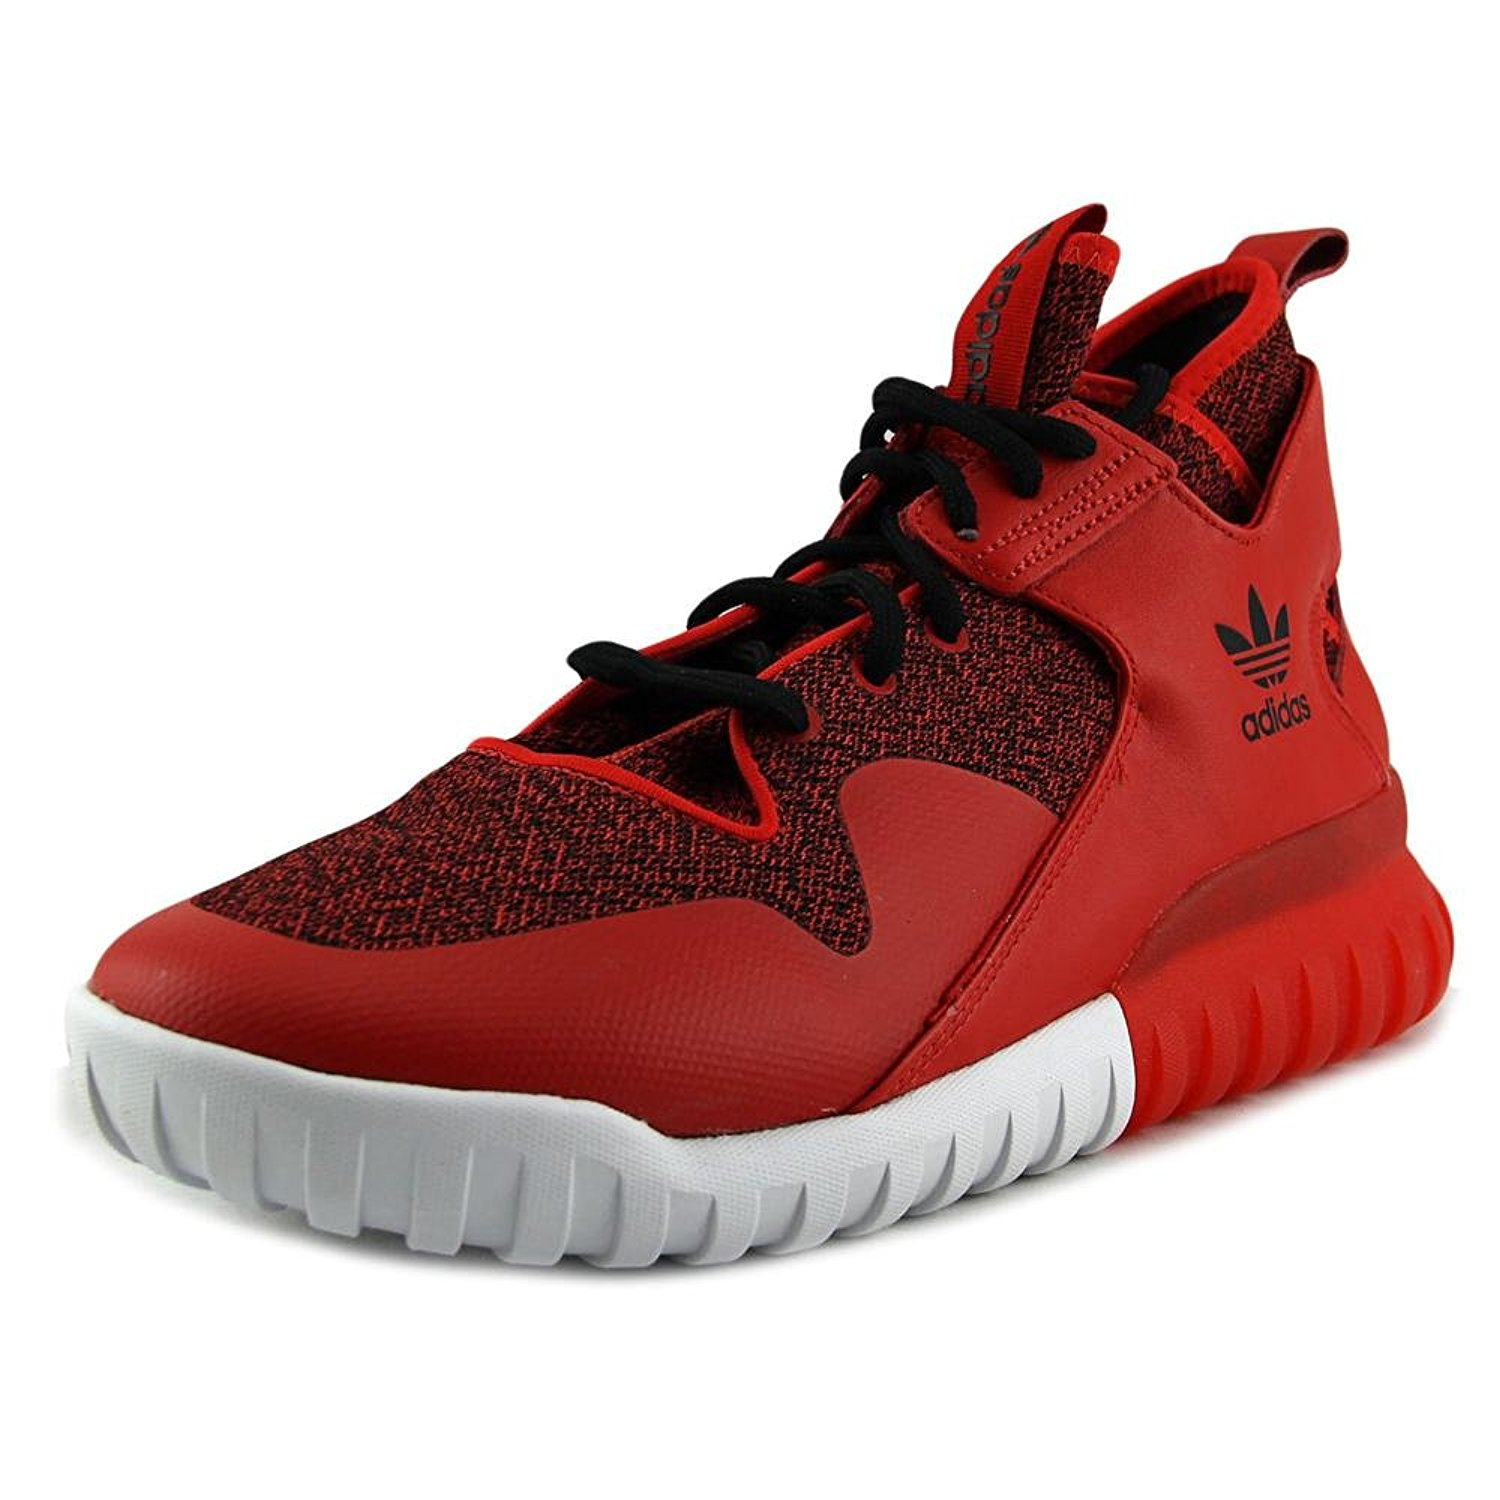 brand new 9b0fc 70570 ... Superstar Adicolor Fashion Sneaker. null. null. Get Quotations ·  Tubular X Mens in Red Red Black by Adidas, 11